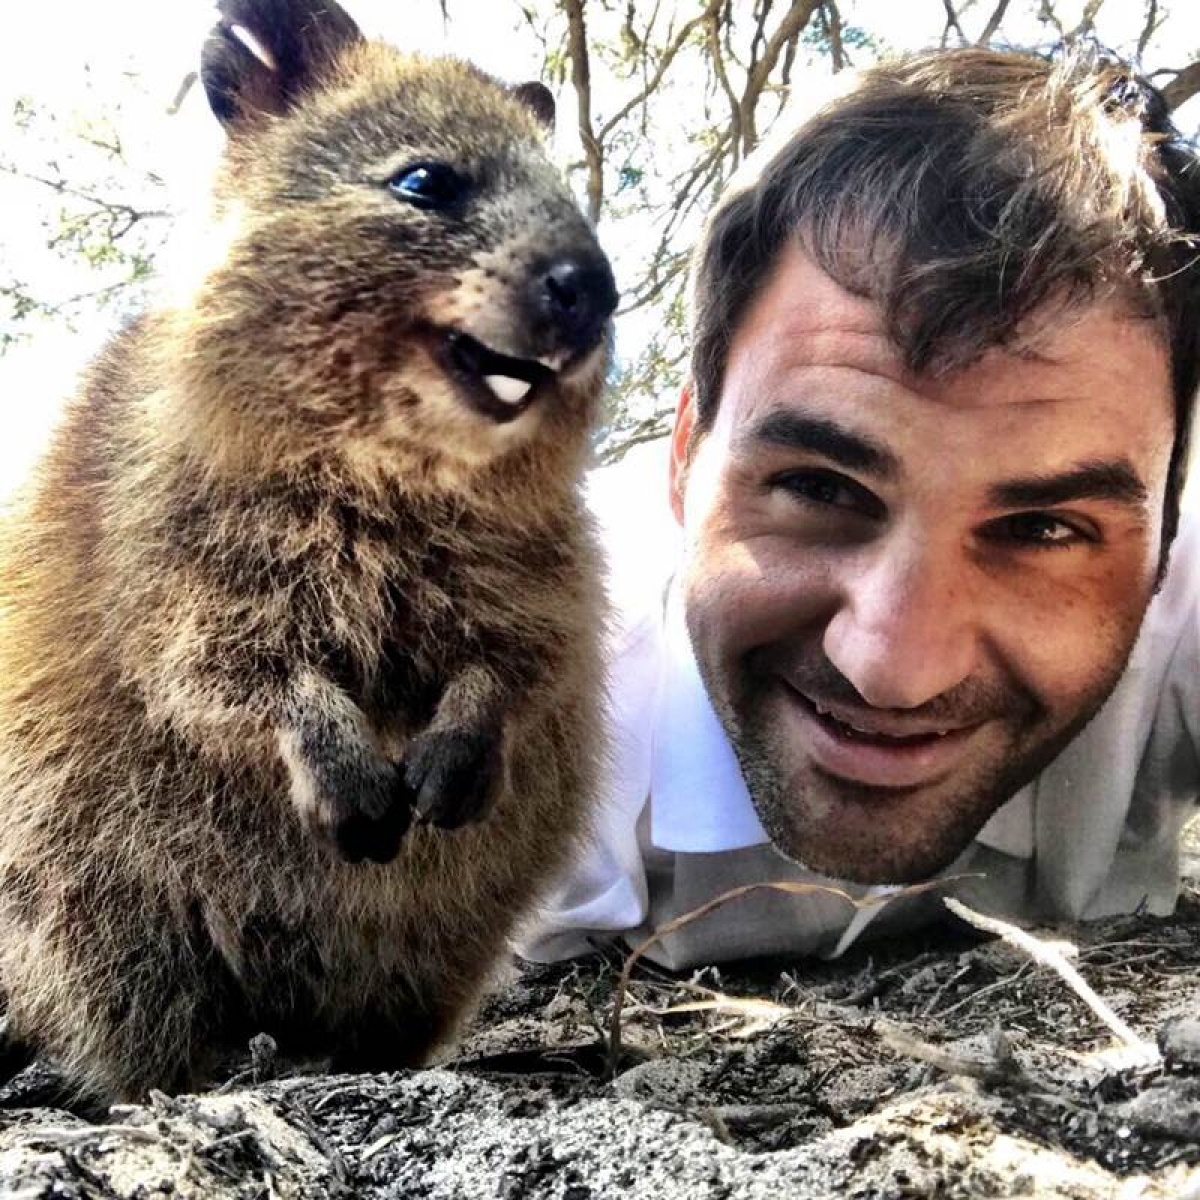 See photos: Tennis legend Roger Federer clicks adorable selfie with quokkas and it goes viral